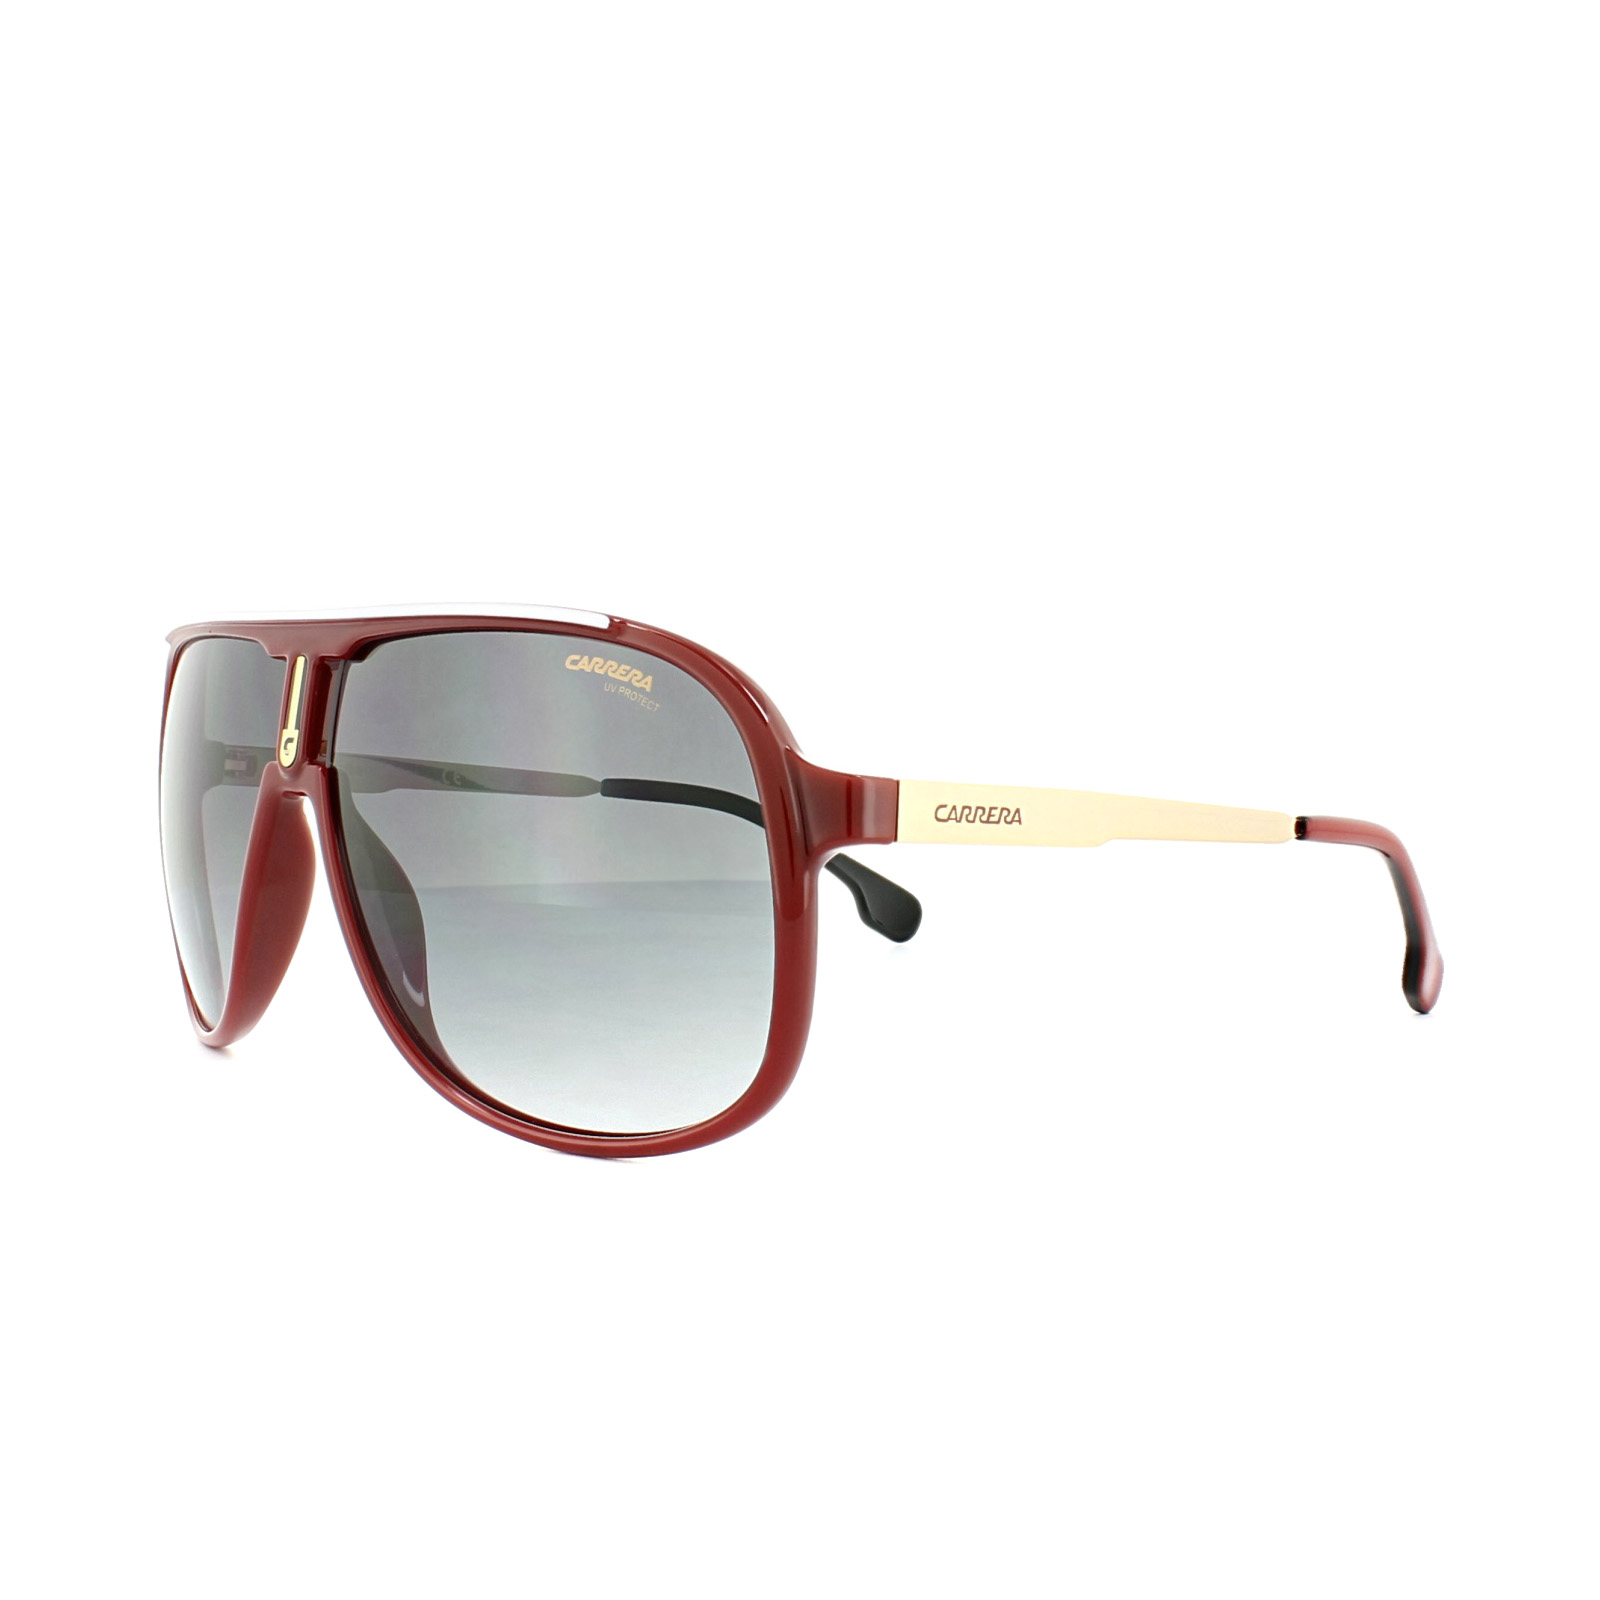 0aa72e4ec111 Cheap Carrera 1007/S Sunglasses - Discounted Sunglasses